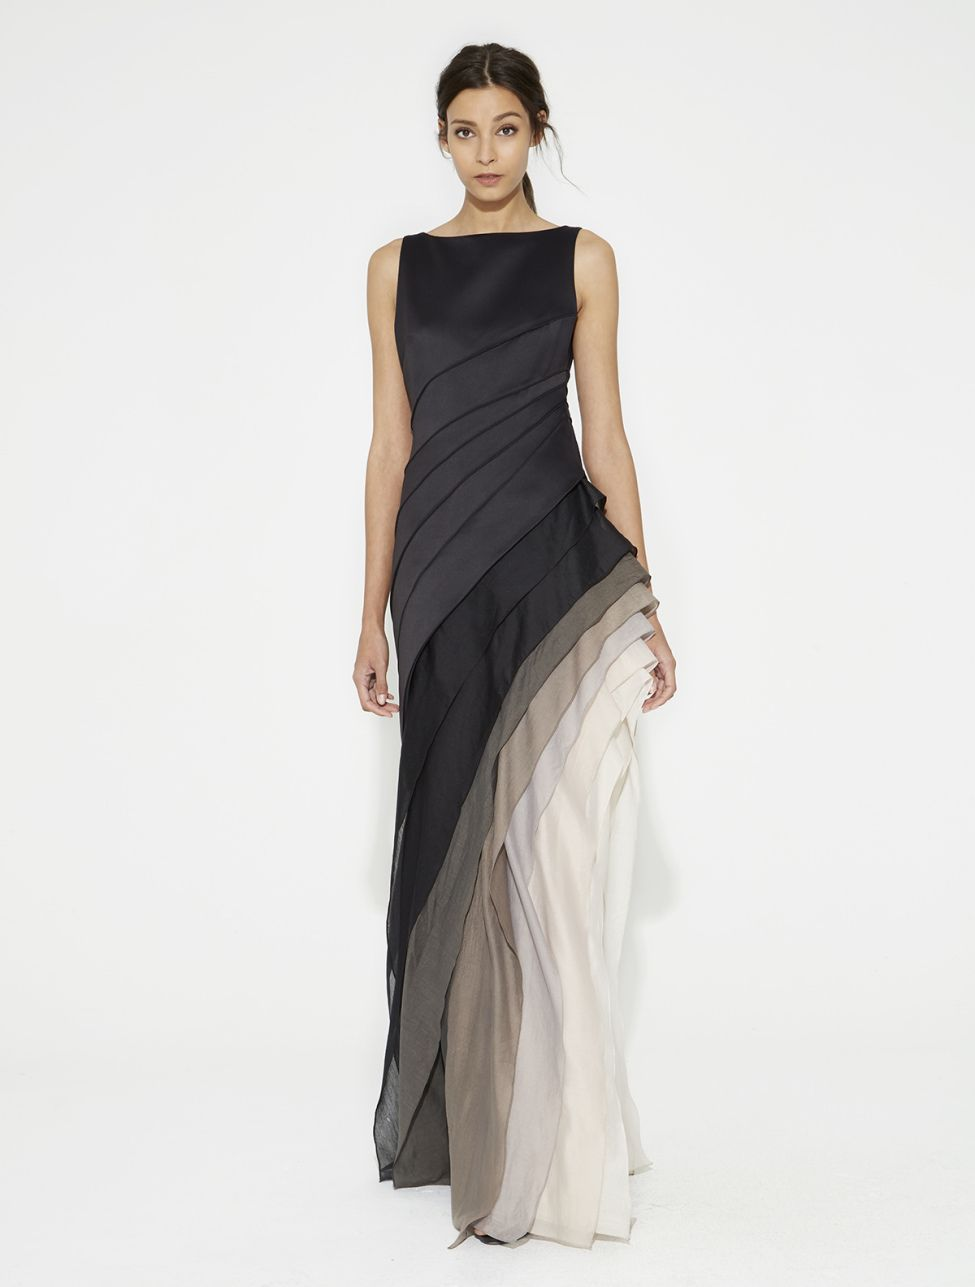 766be1703f6d Halston Ombre Voile Satin Gown nel 2019